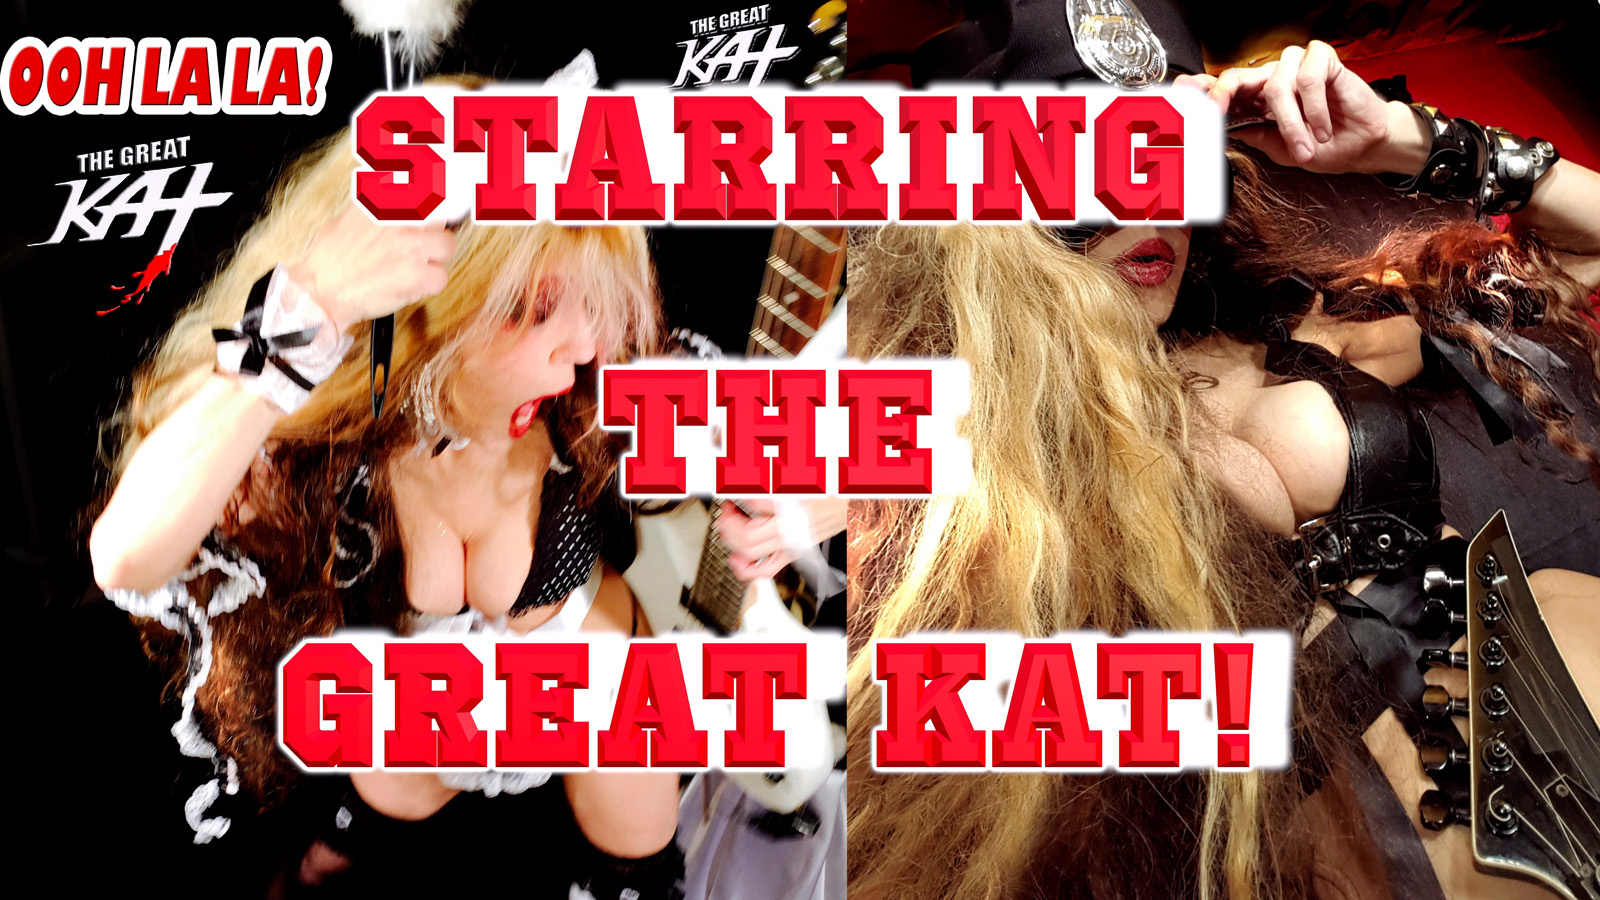 "THE GREAT KAT'S ""TOP 20 HOT SHRED HOLIDAYS! STARRING THE GREAT KAT"" From The Great Kat's NEW DVD!!!!"